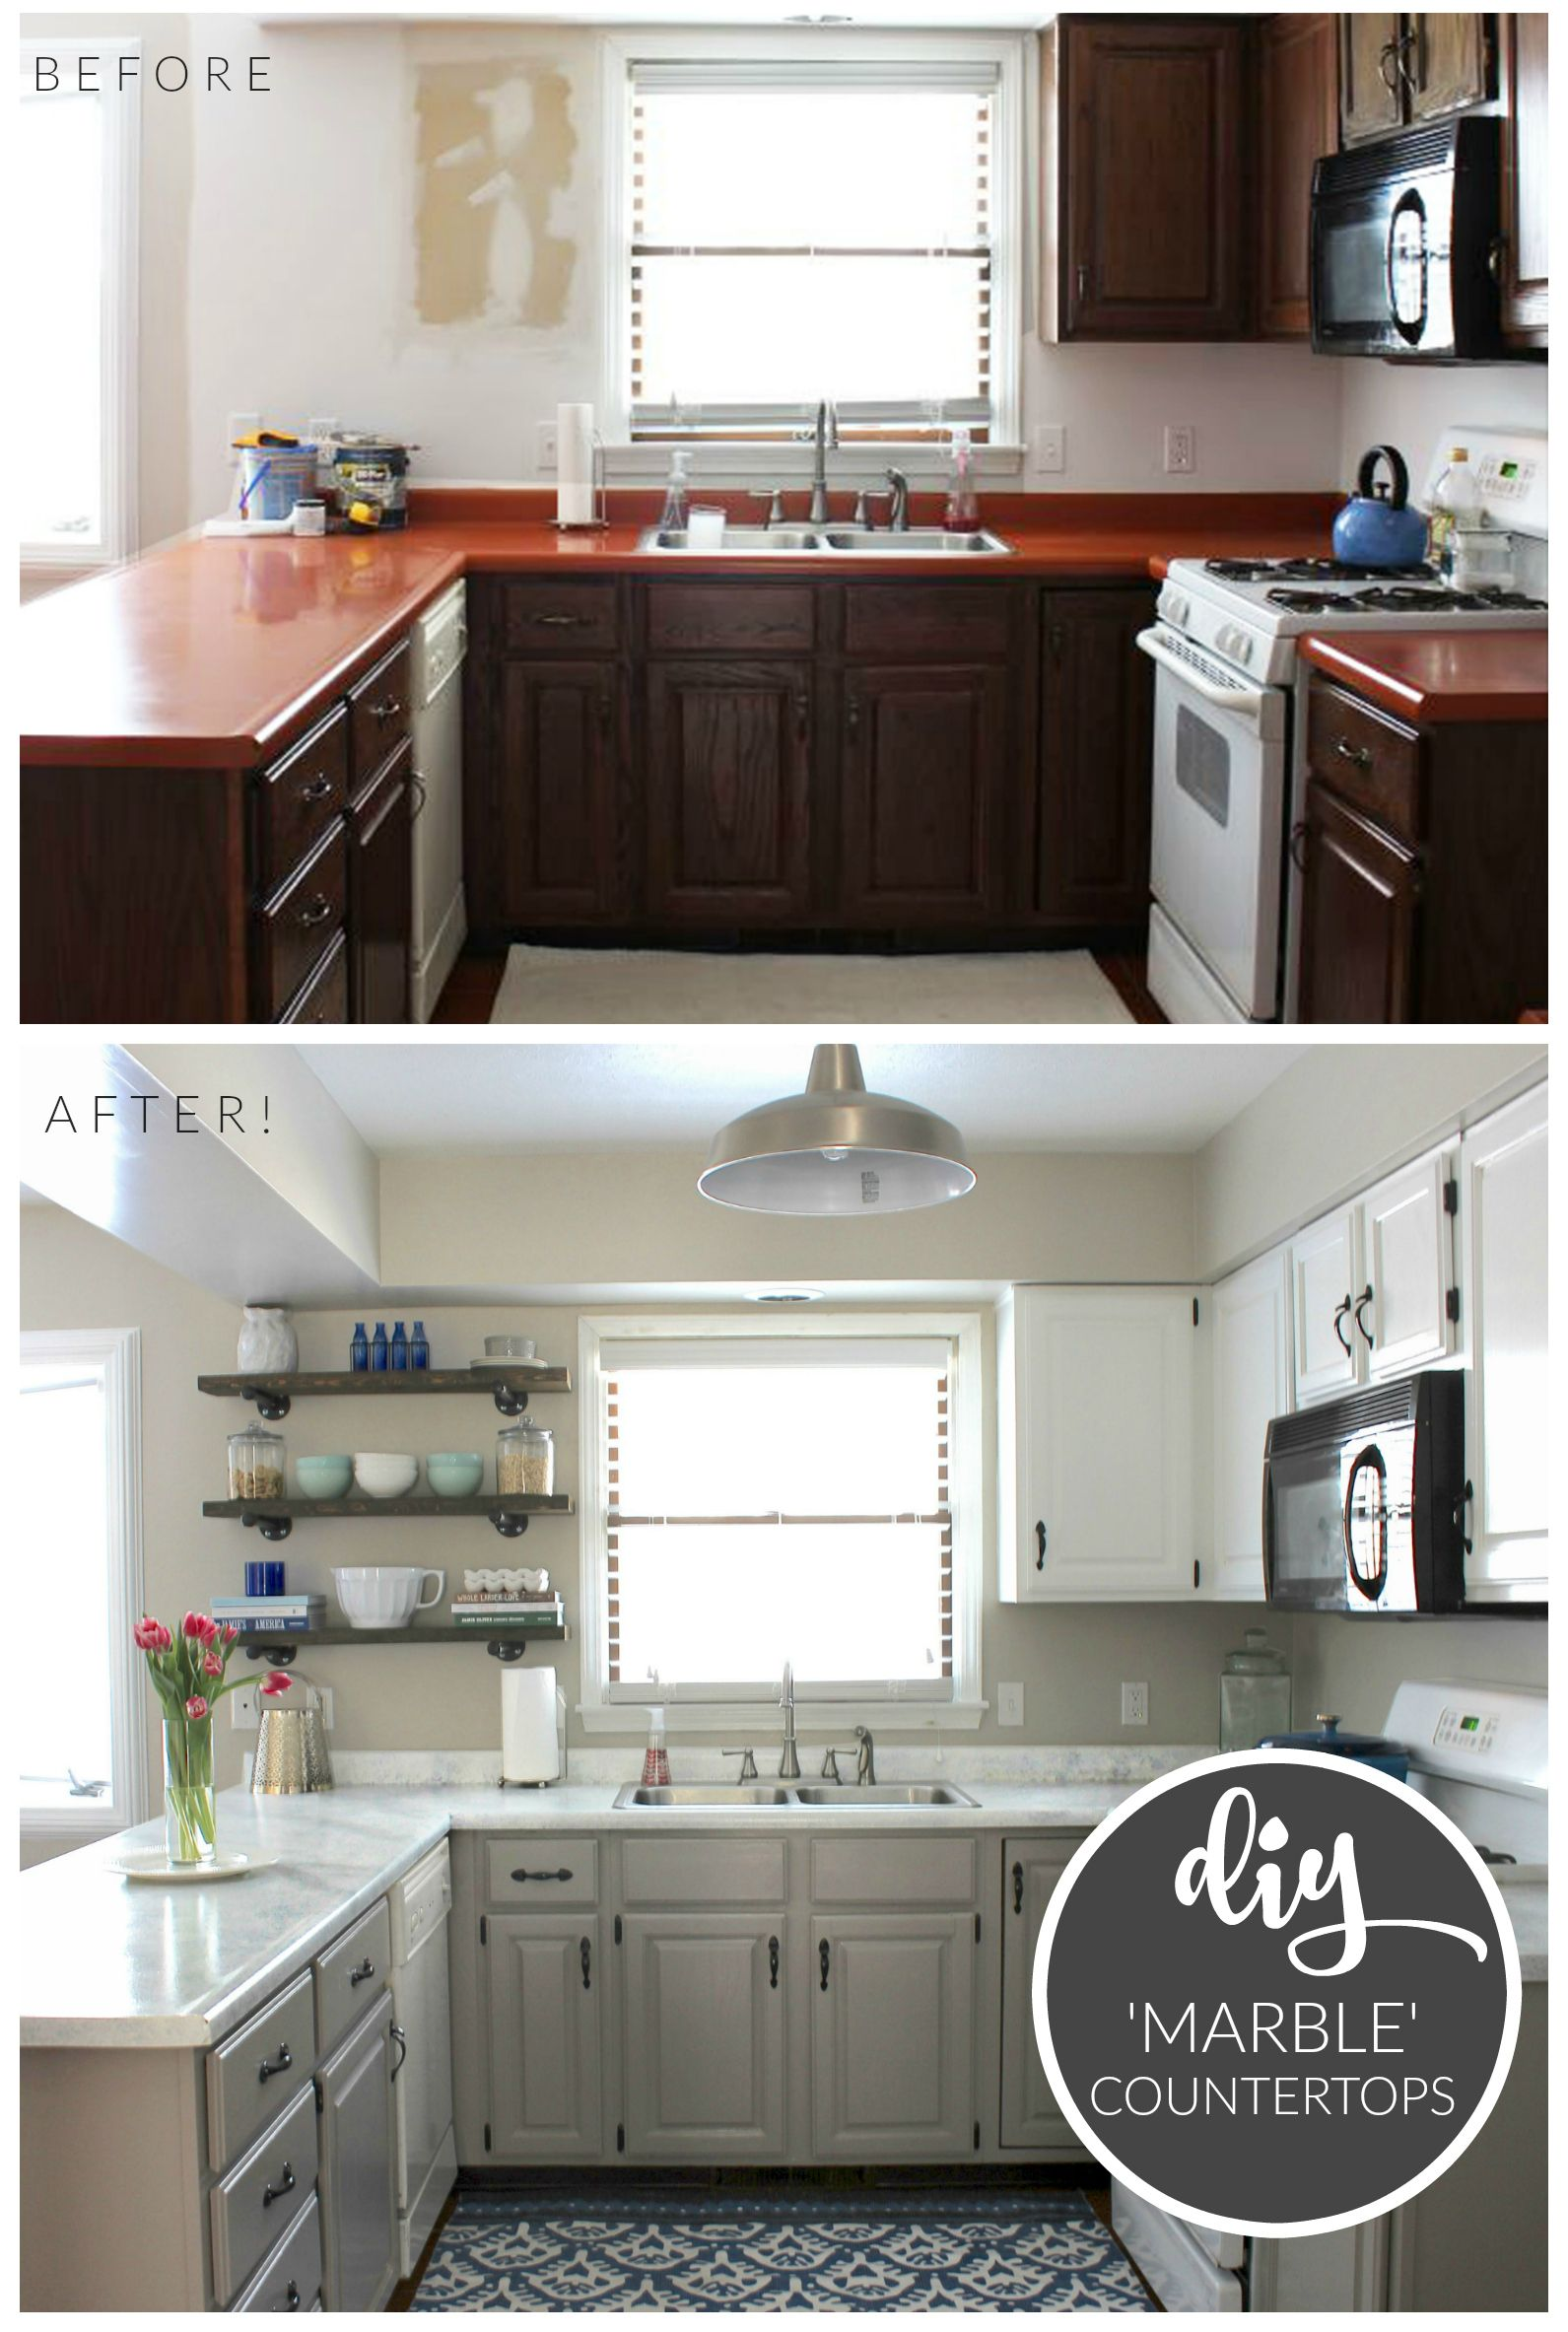 Budget Kitchen Makeover Diy Faux Marble Countertops Painted With The White Diamond Gia Budget Kitchen Makeover Kitchen Diy Makeover Kitchen Remodel Small